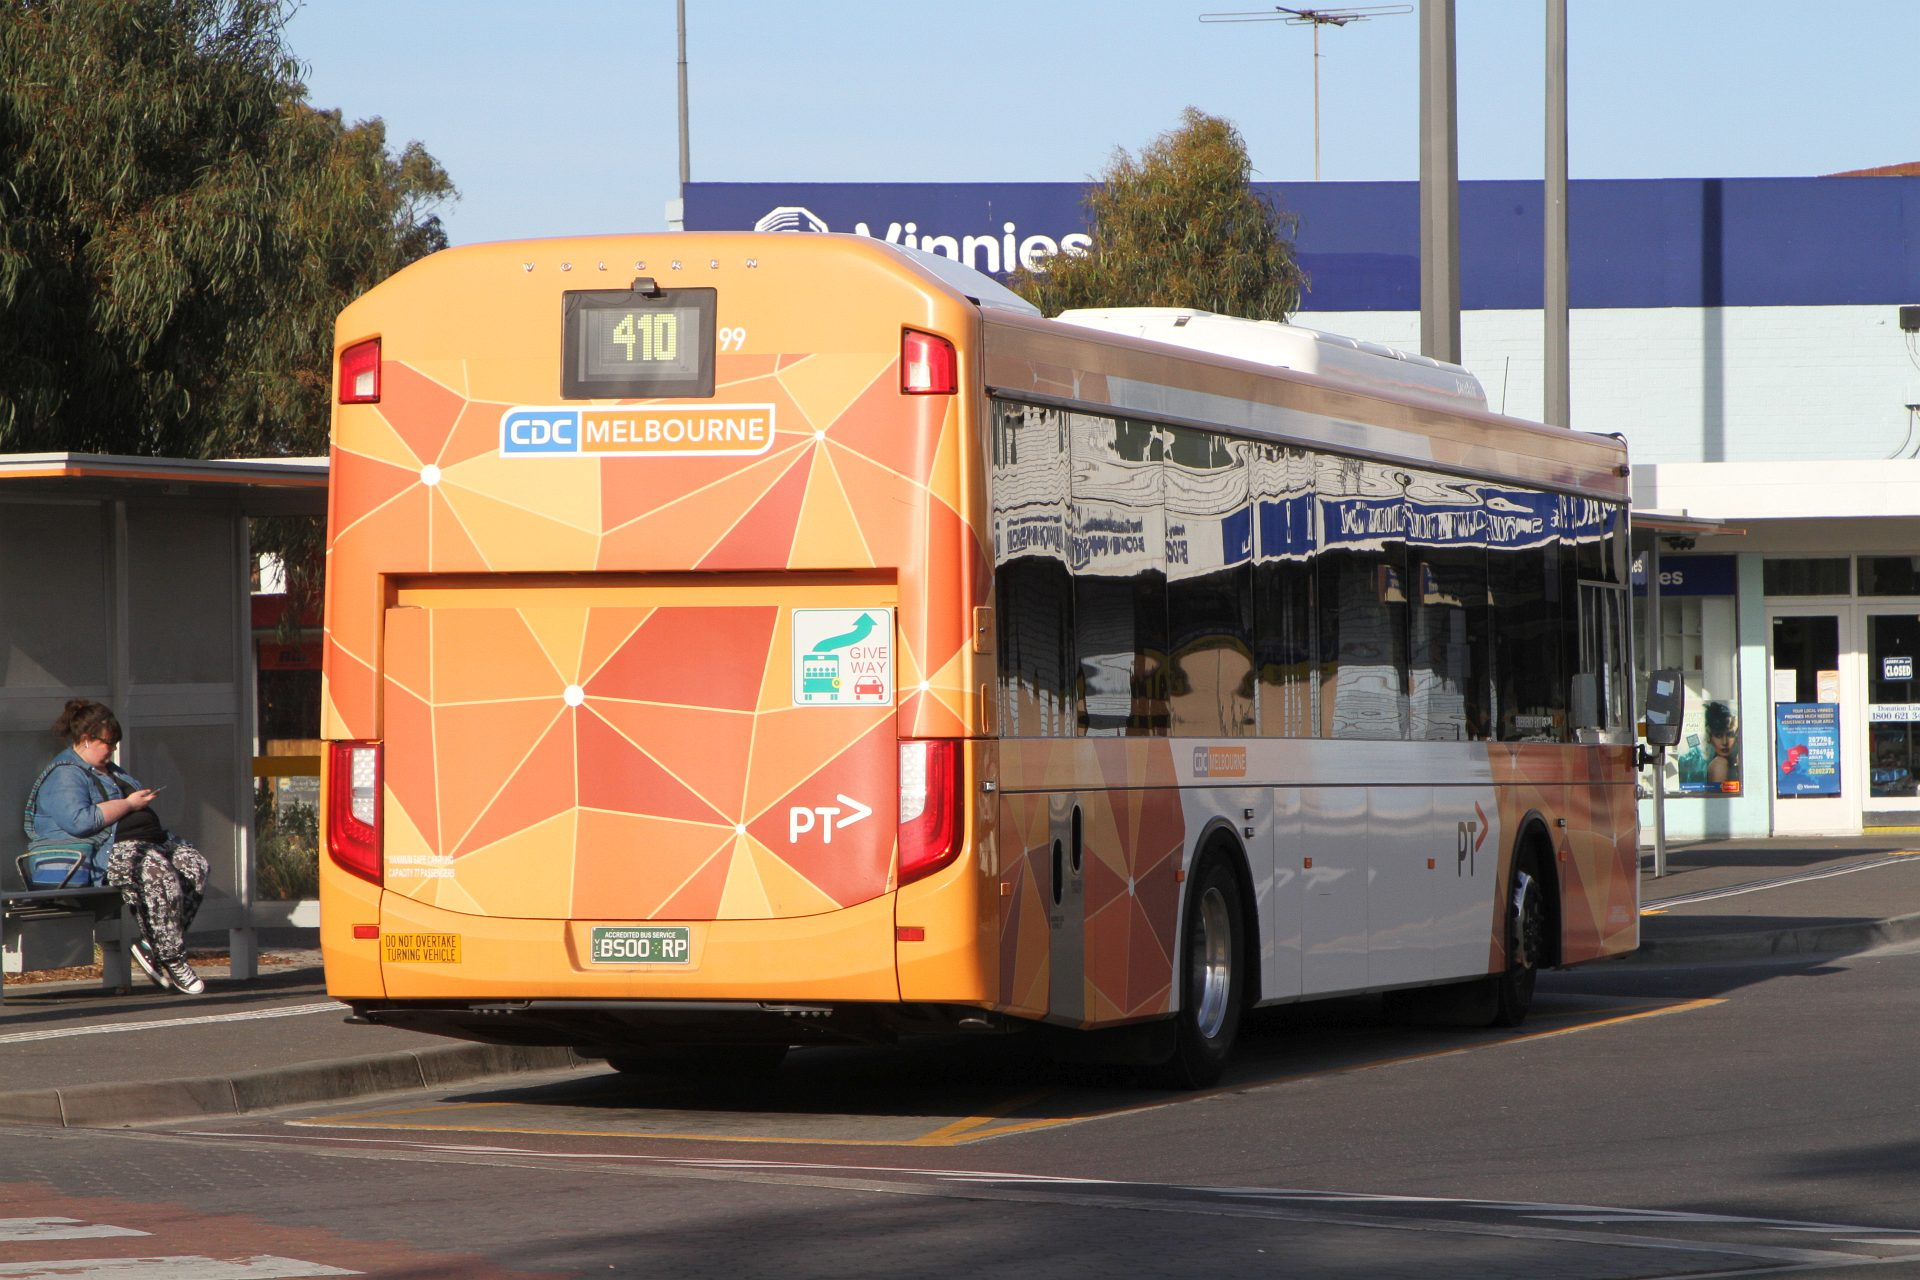 CDC Melbourne Bus 99 BS00RP On Route 410 At Sunshine Station